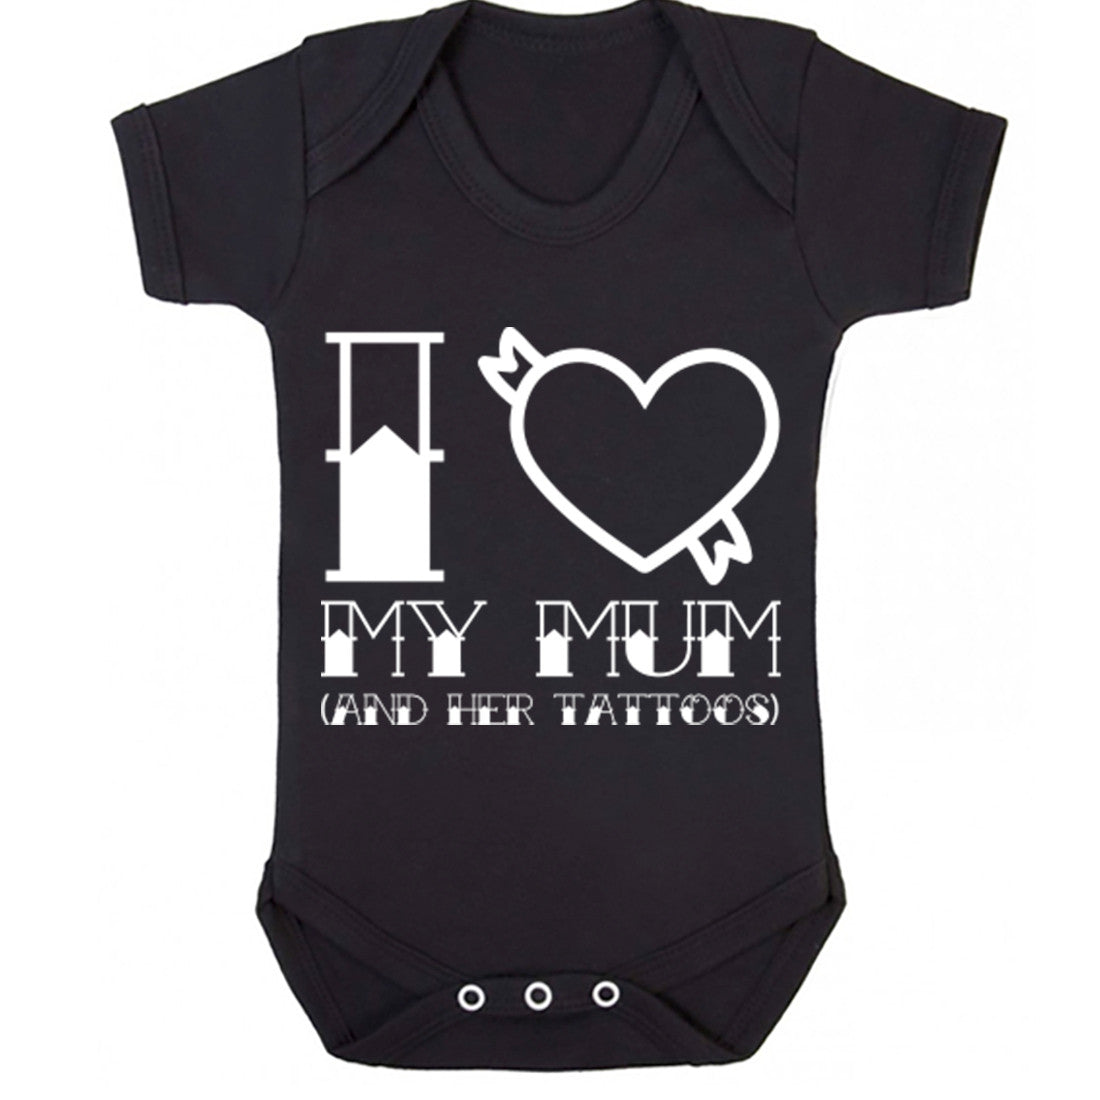 I Love Mum And Her Tattoos Baby Vest K0348